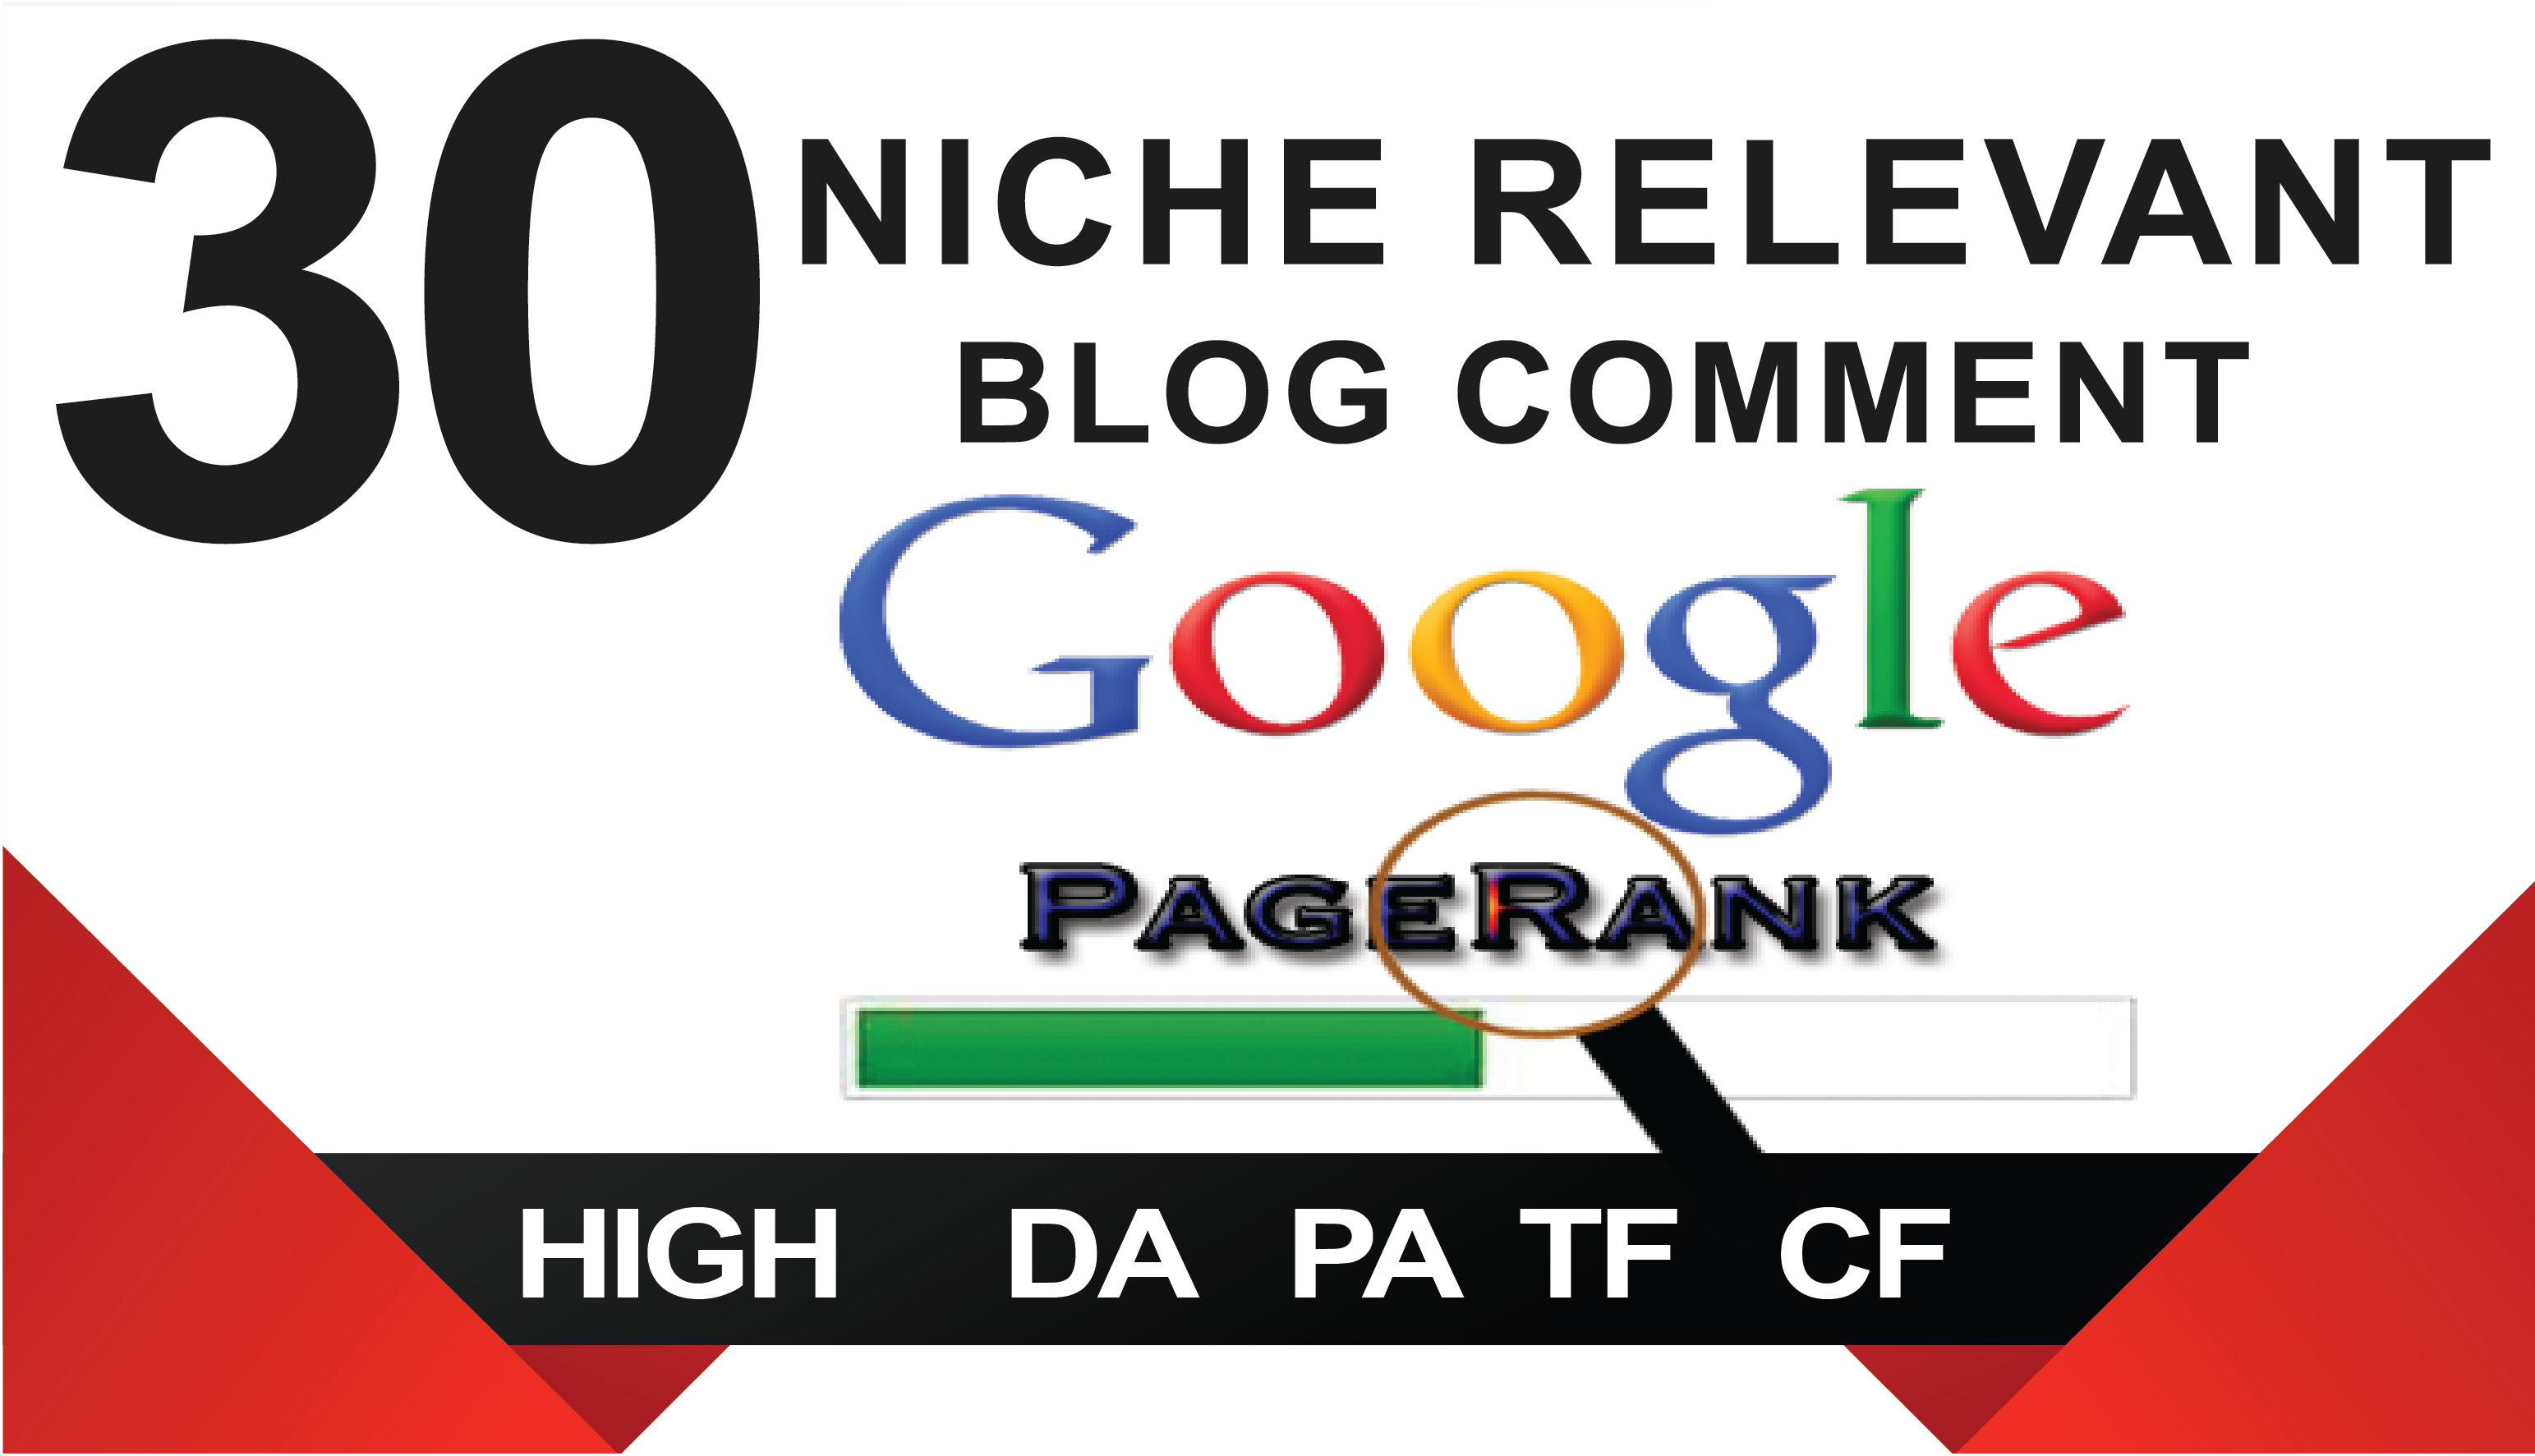 I will do 30 niche relevant manually blog comments